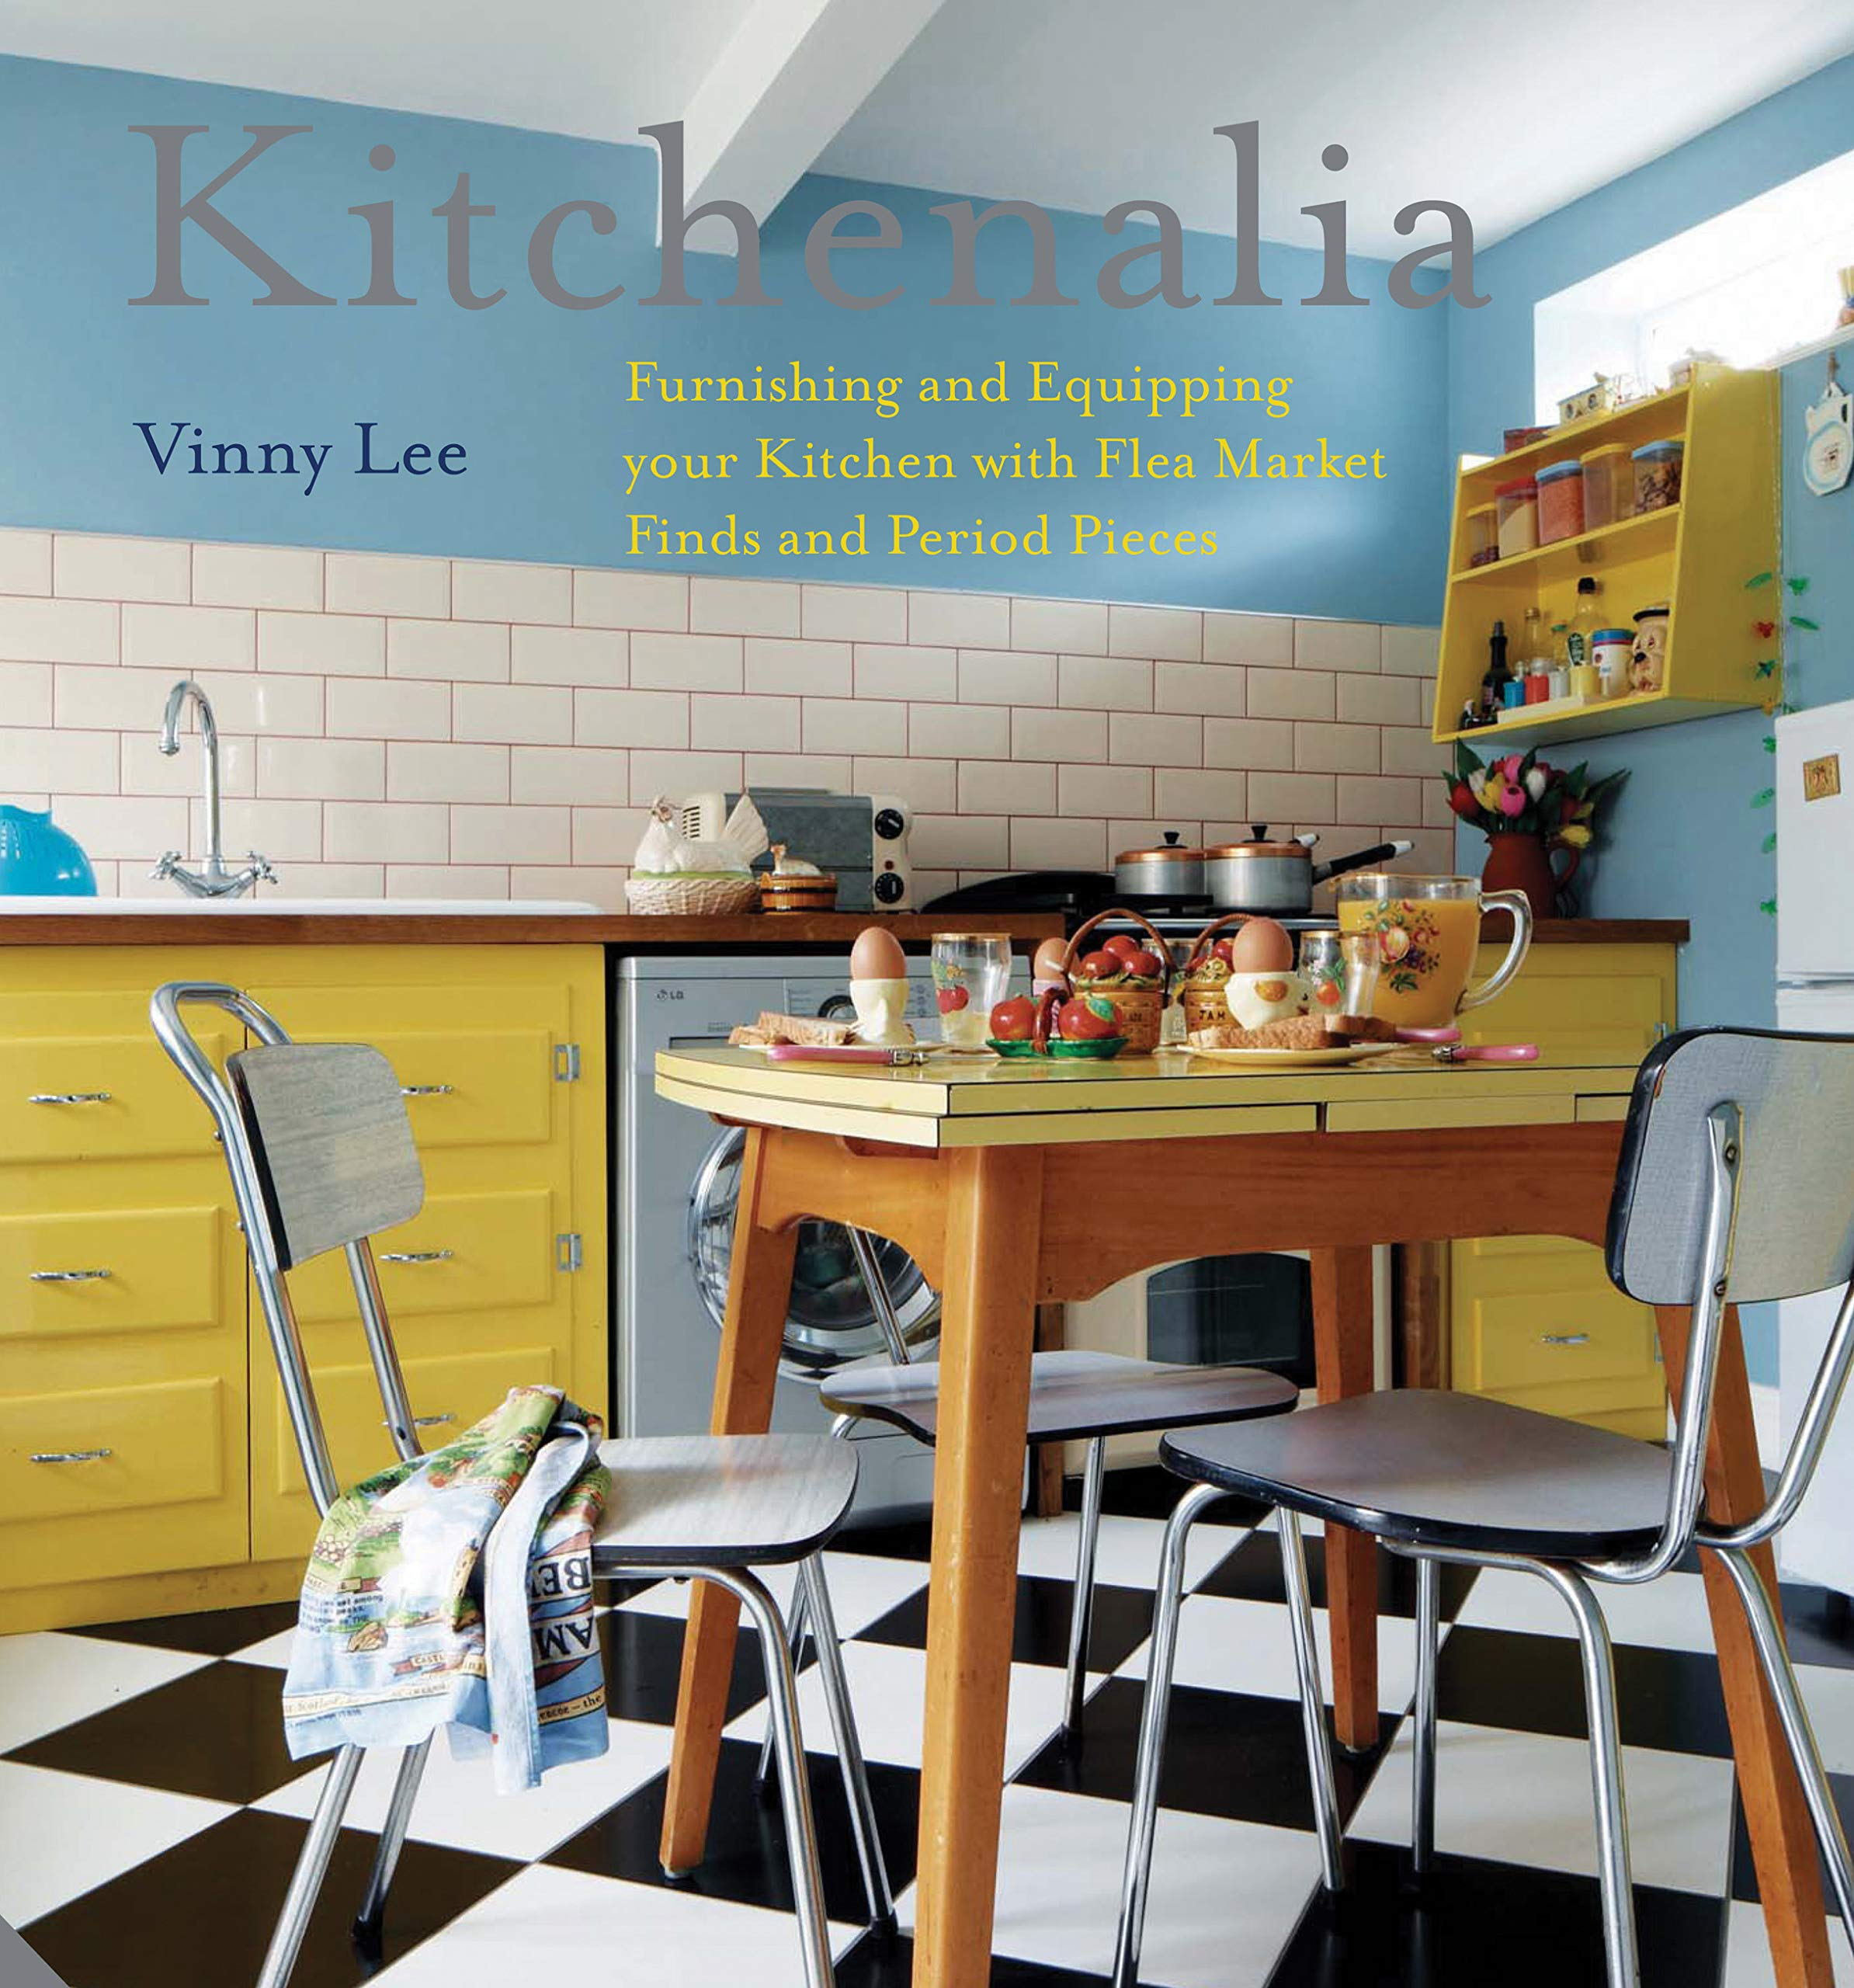 Kitchenalia  Furnishing And Equipping Your Kitchen With Flea Market Finds And Period Pieces